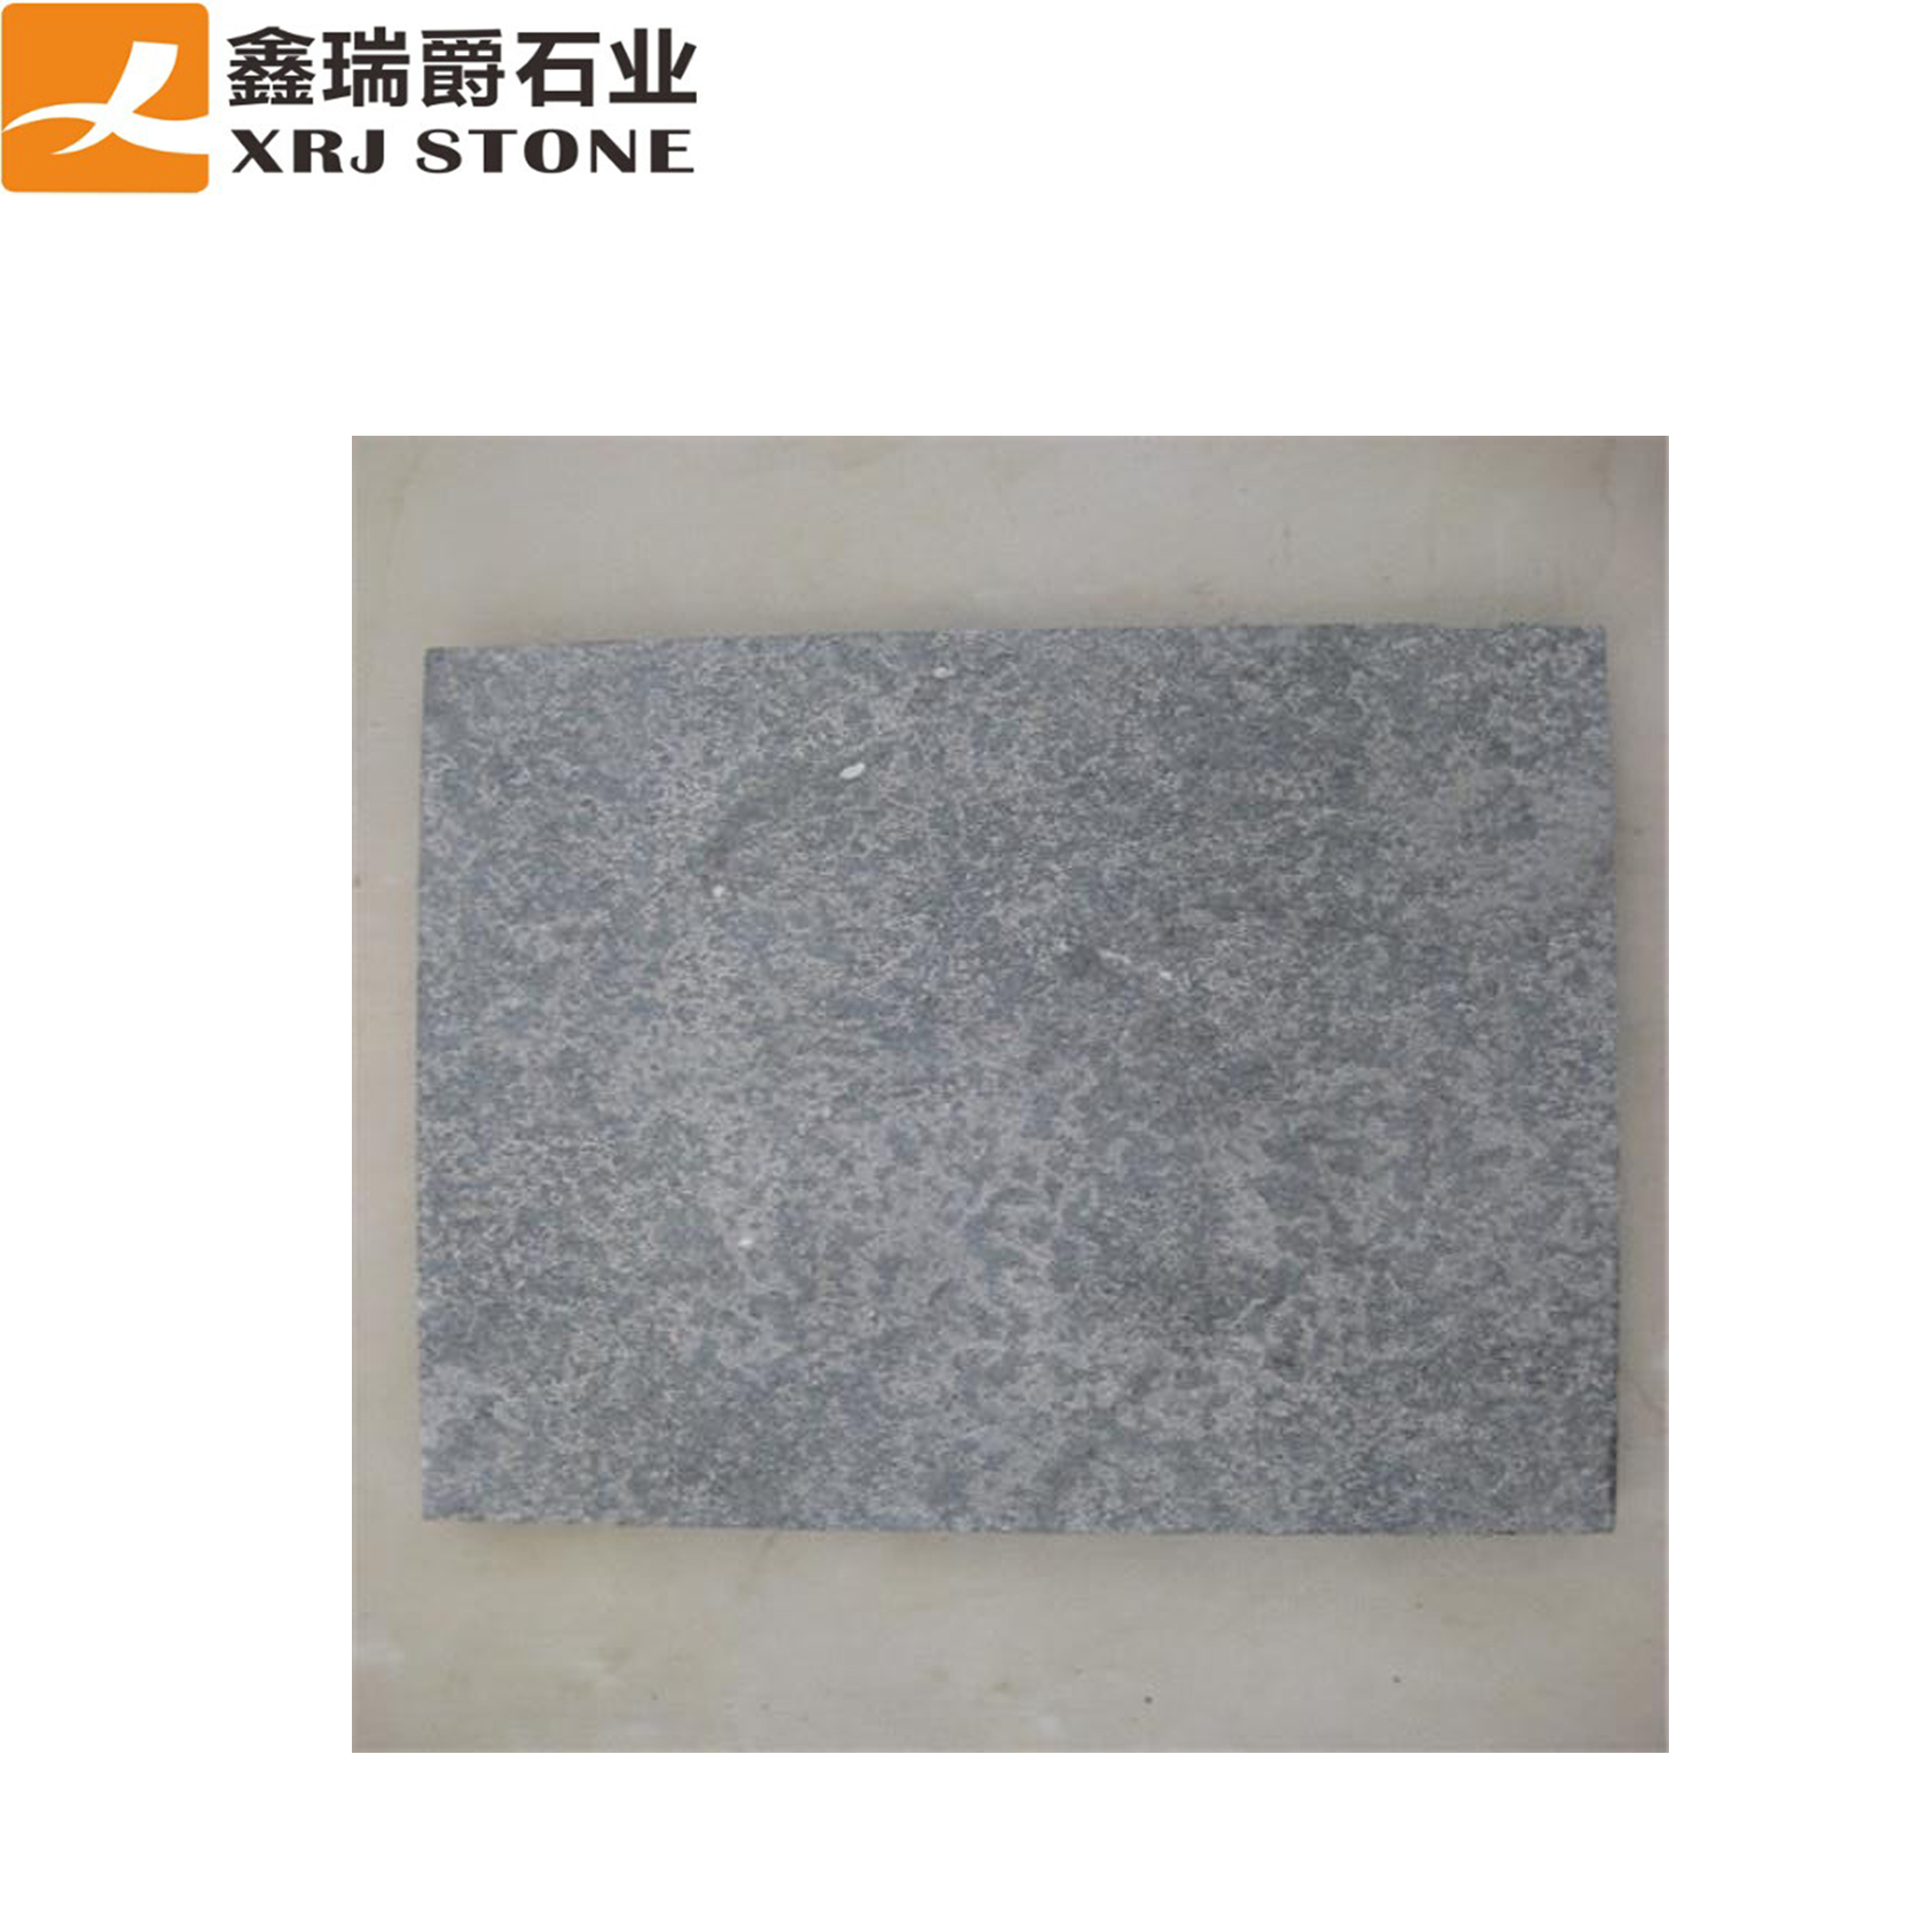 Chinese Flamed Bluestone Pavers With Swimming Pool Coping Stones - Buy  Swimming Pool Coping Stones,Natural Stone Pavers,Chinese Bluestone Pavers  ...